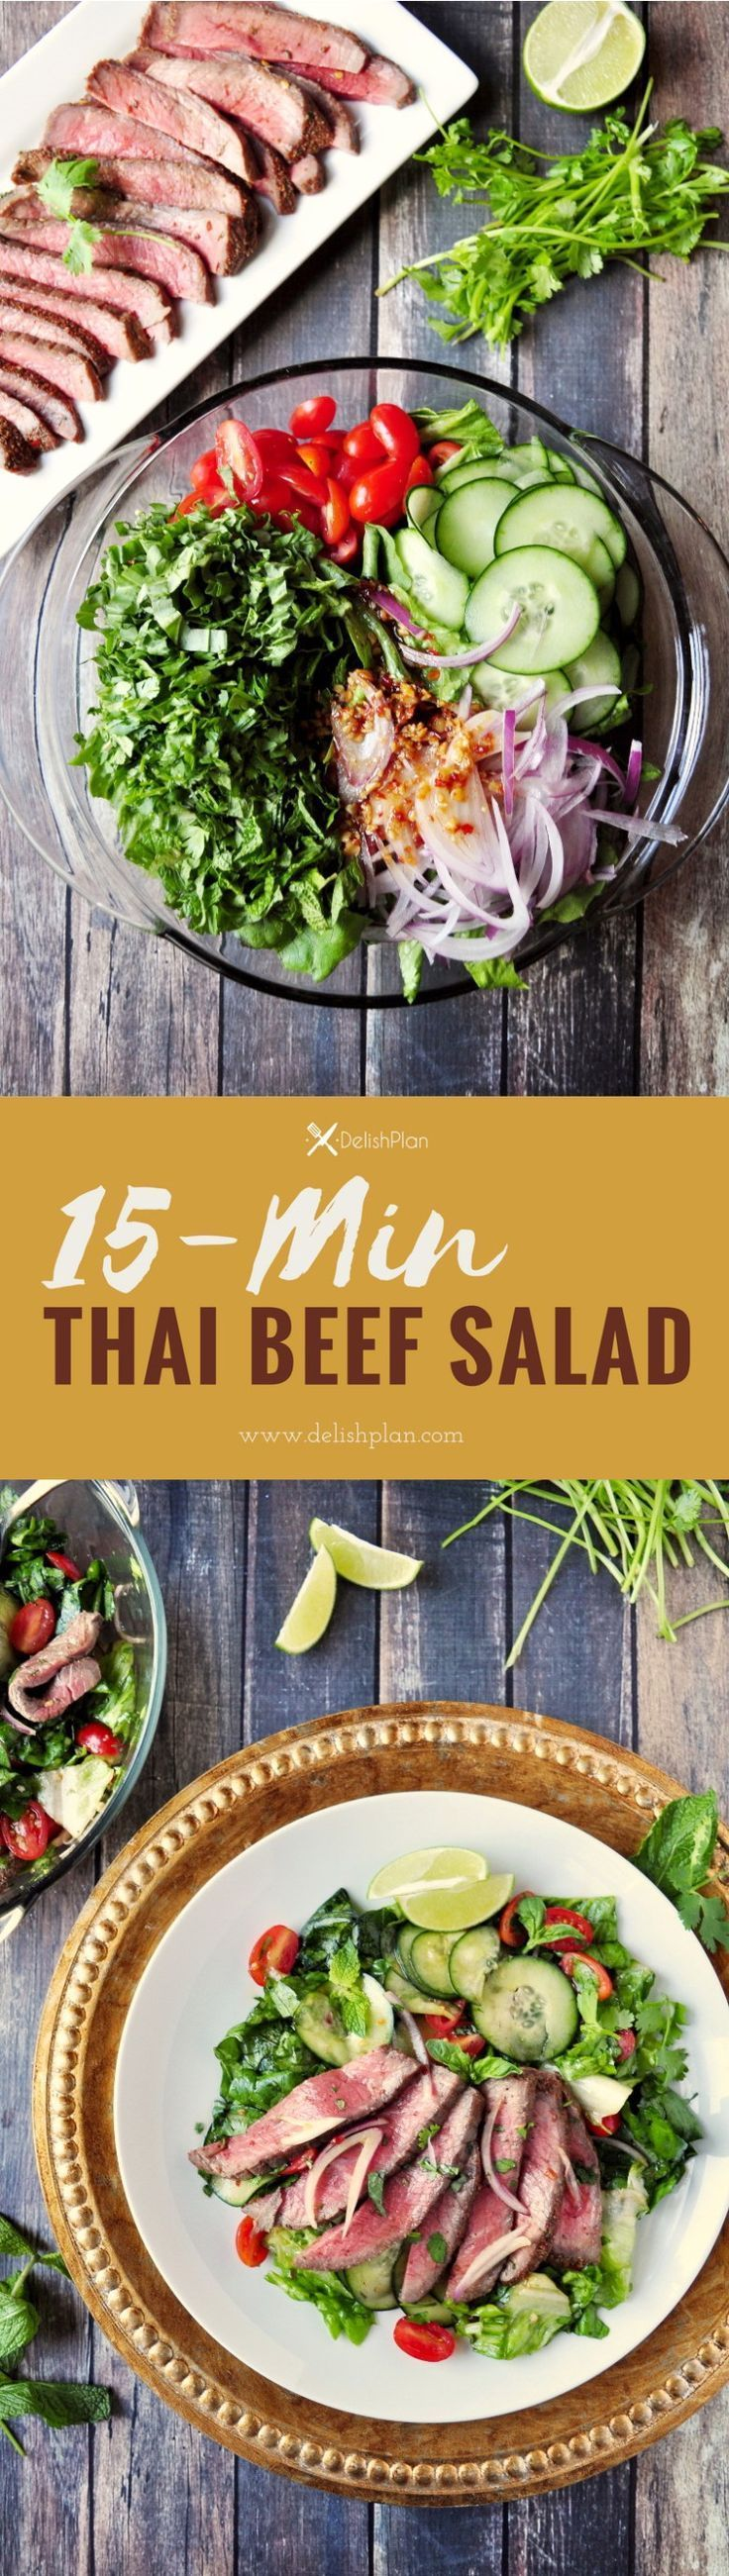 Got leftover roast? Make this Thai beef salad in just 15 minutes. #onedishmeal #lowcarb #paleo